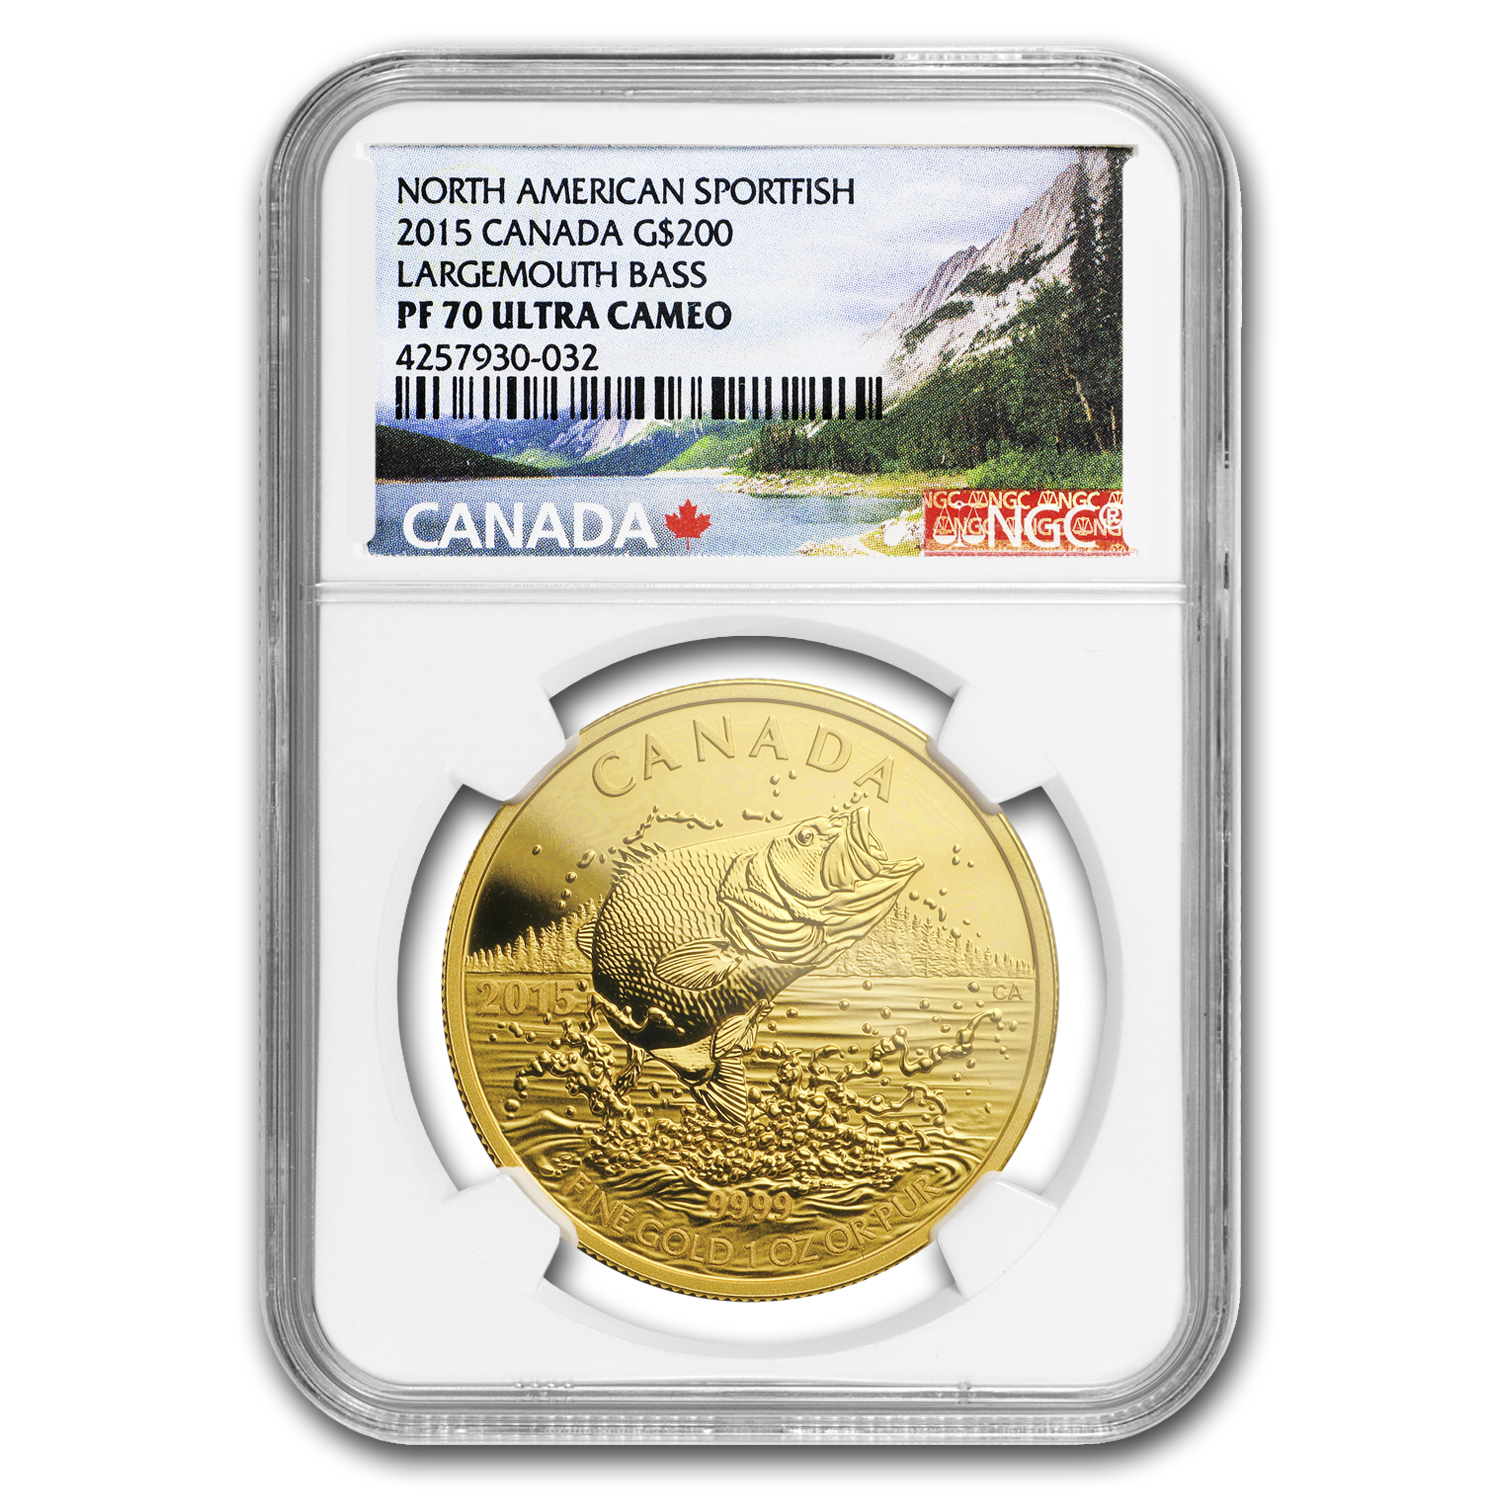 2015 Canada 1 oz Gold $200 Largemouth Bass PF-70 NGC